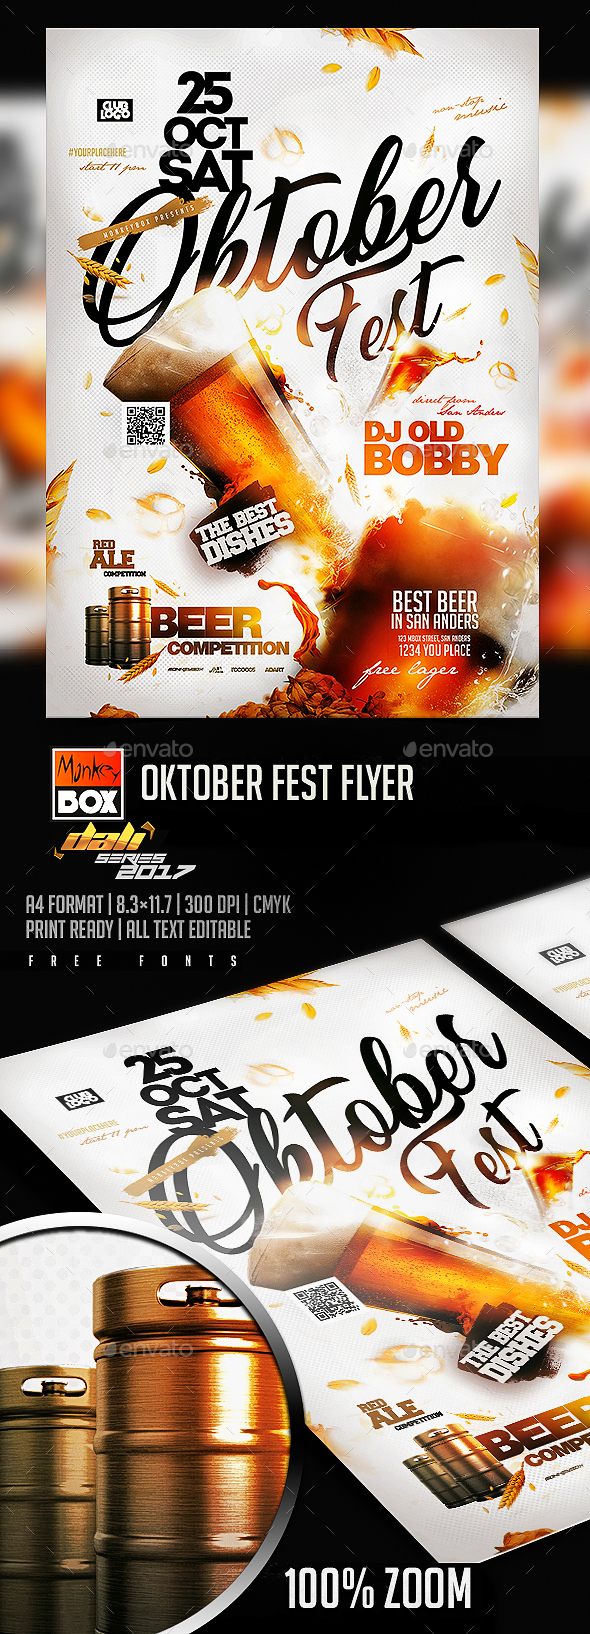 GraphicRiver Oktober Fest Flyer 20713365